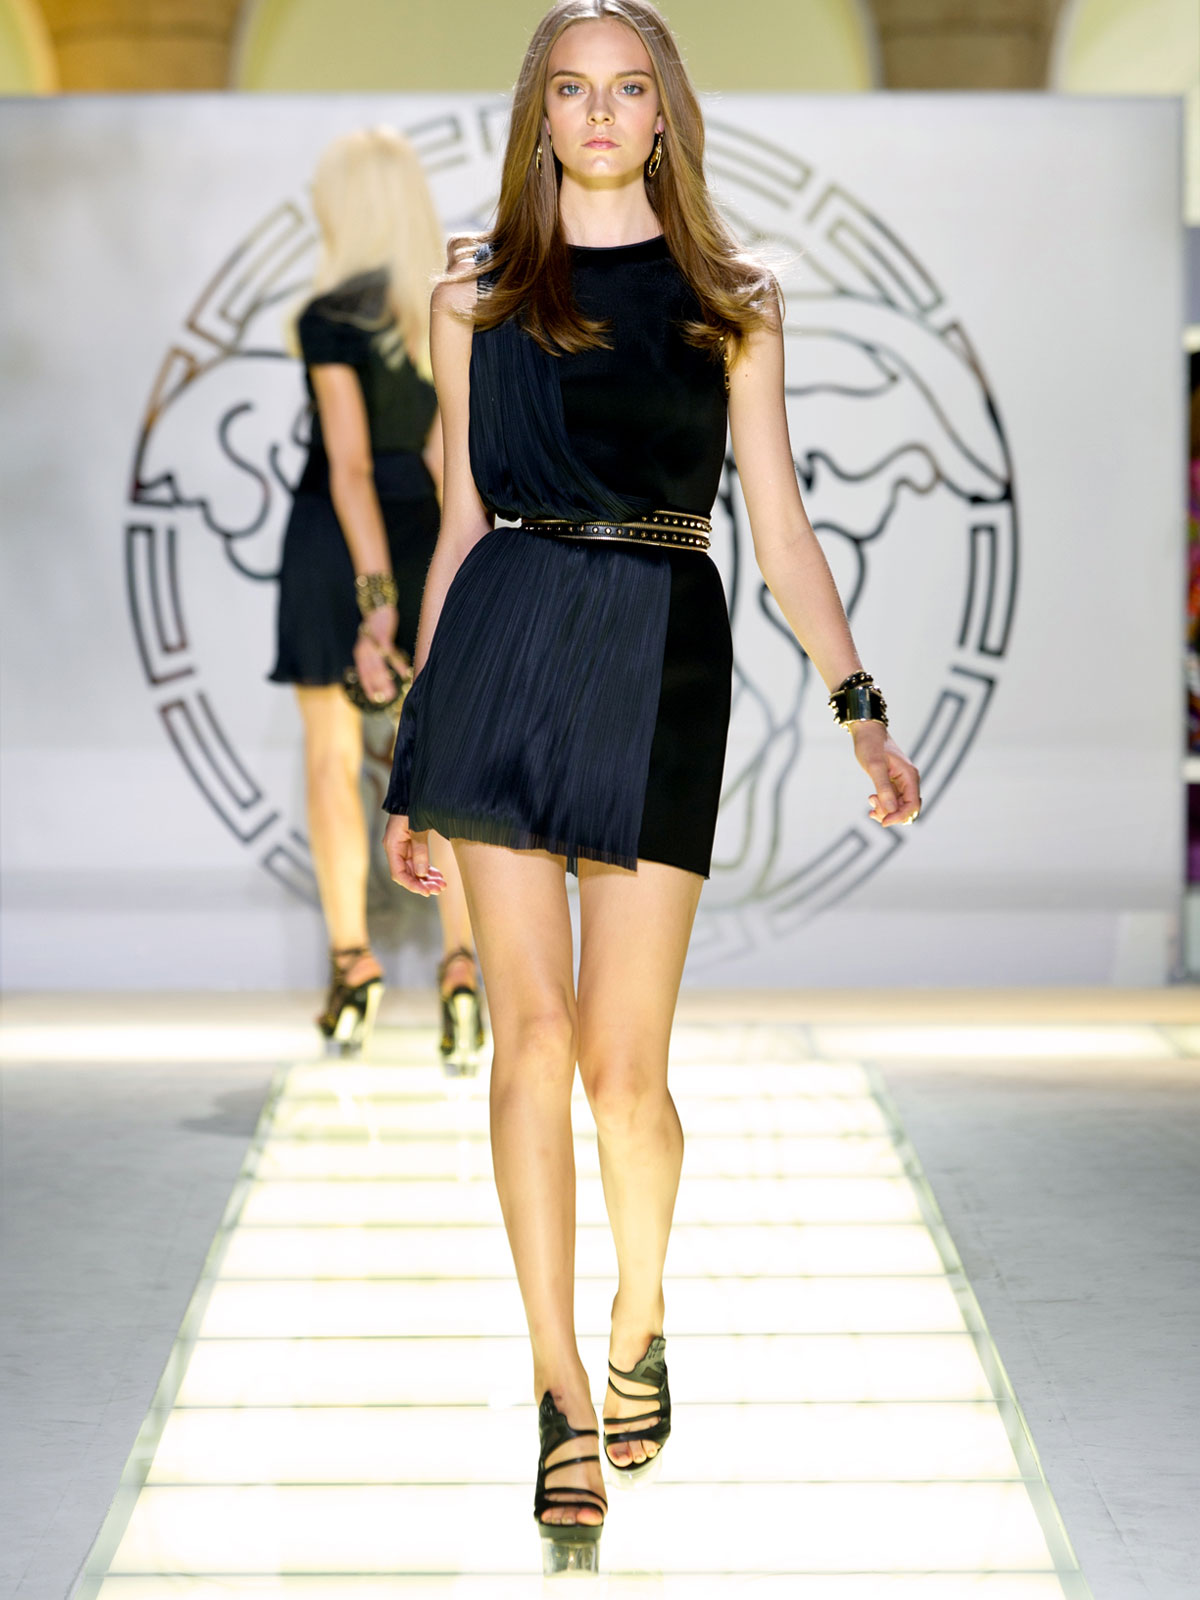 Versace Fashion Runway Show With Beautiful Versace Models Modeling Versace Dresses And Skirts On The Fashion Runway.